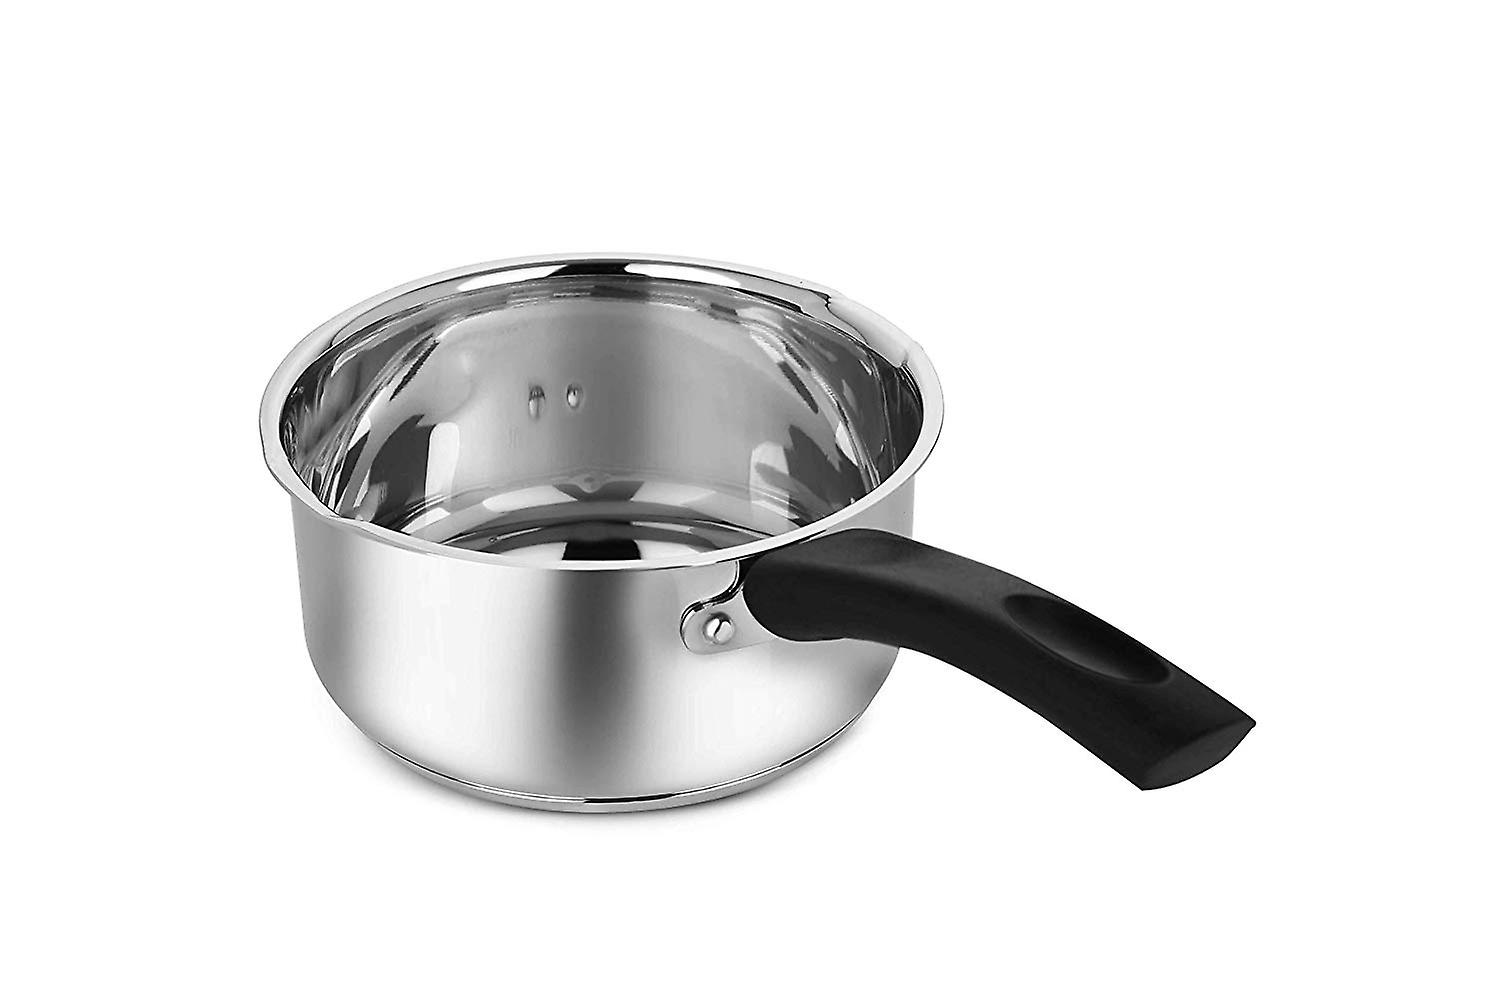 Penguin Home Professional Induction-Safe Saucepan with Lid, Stainless Steel, Black Handle